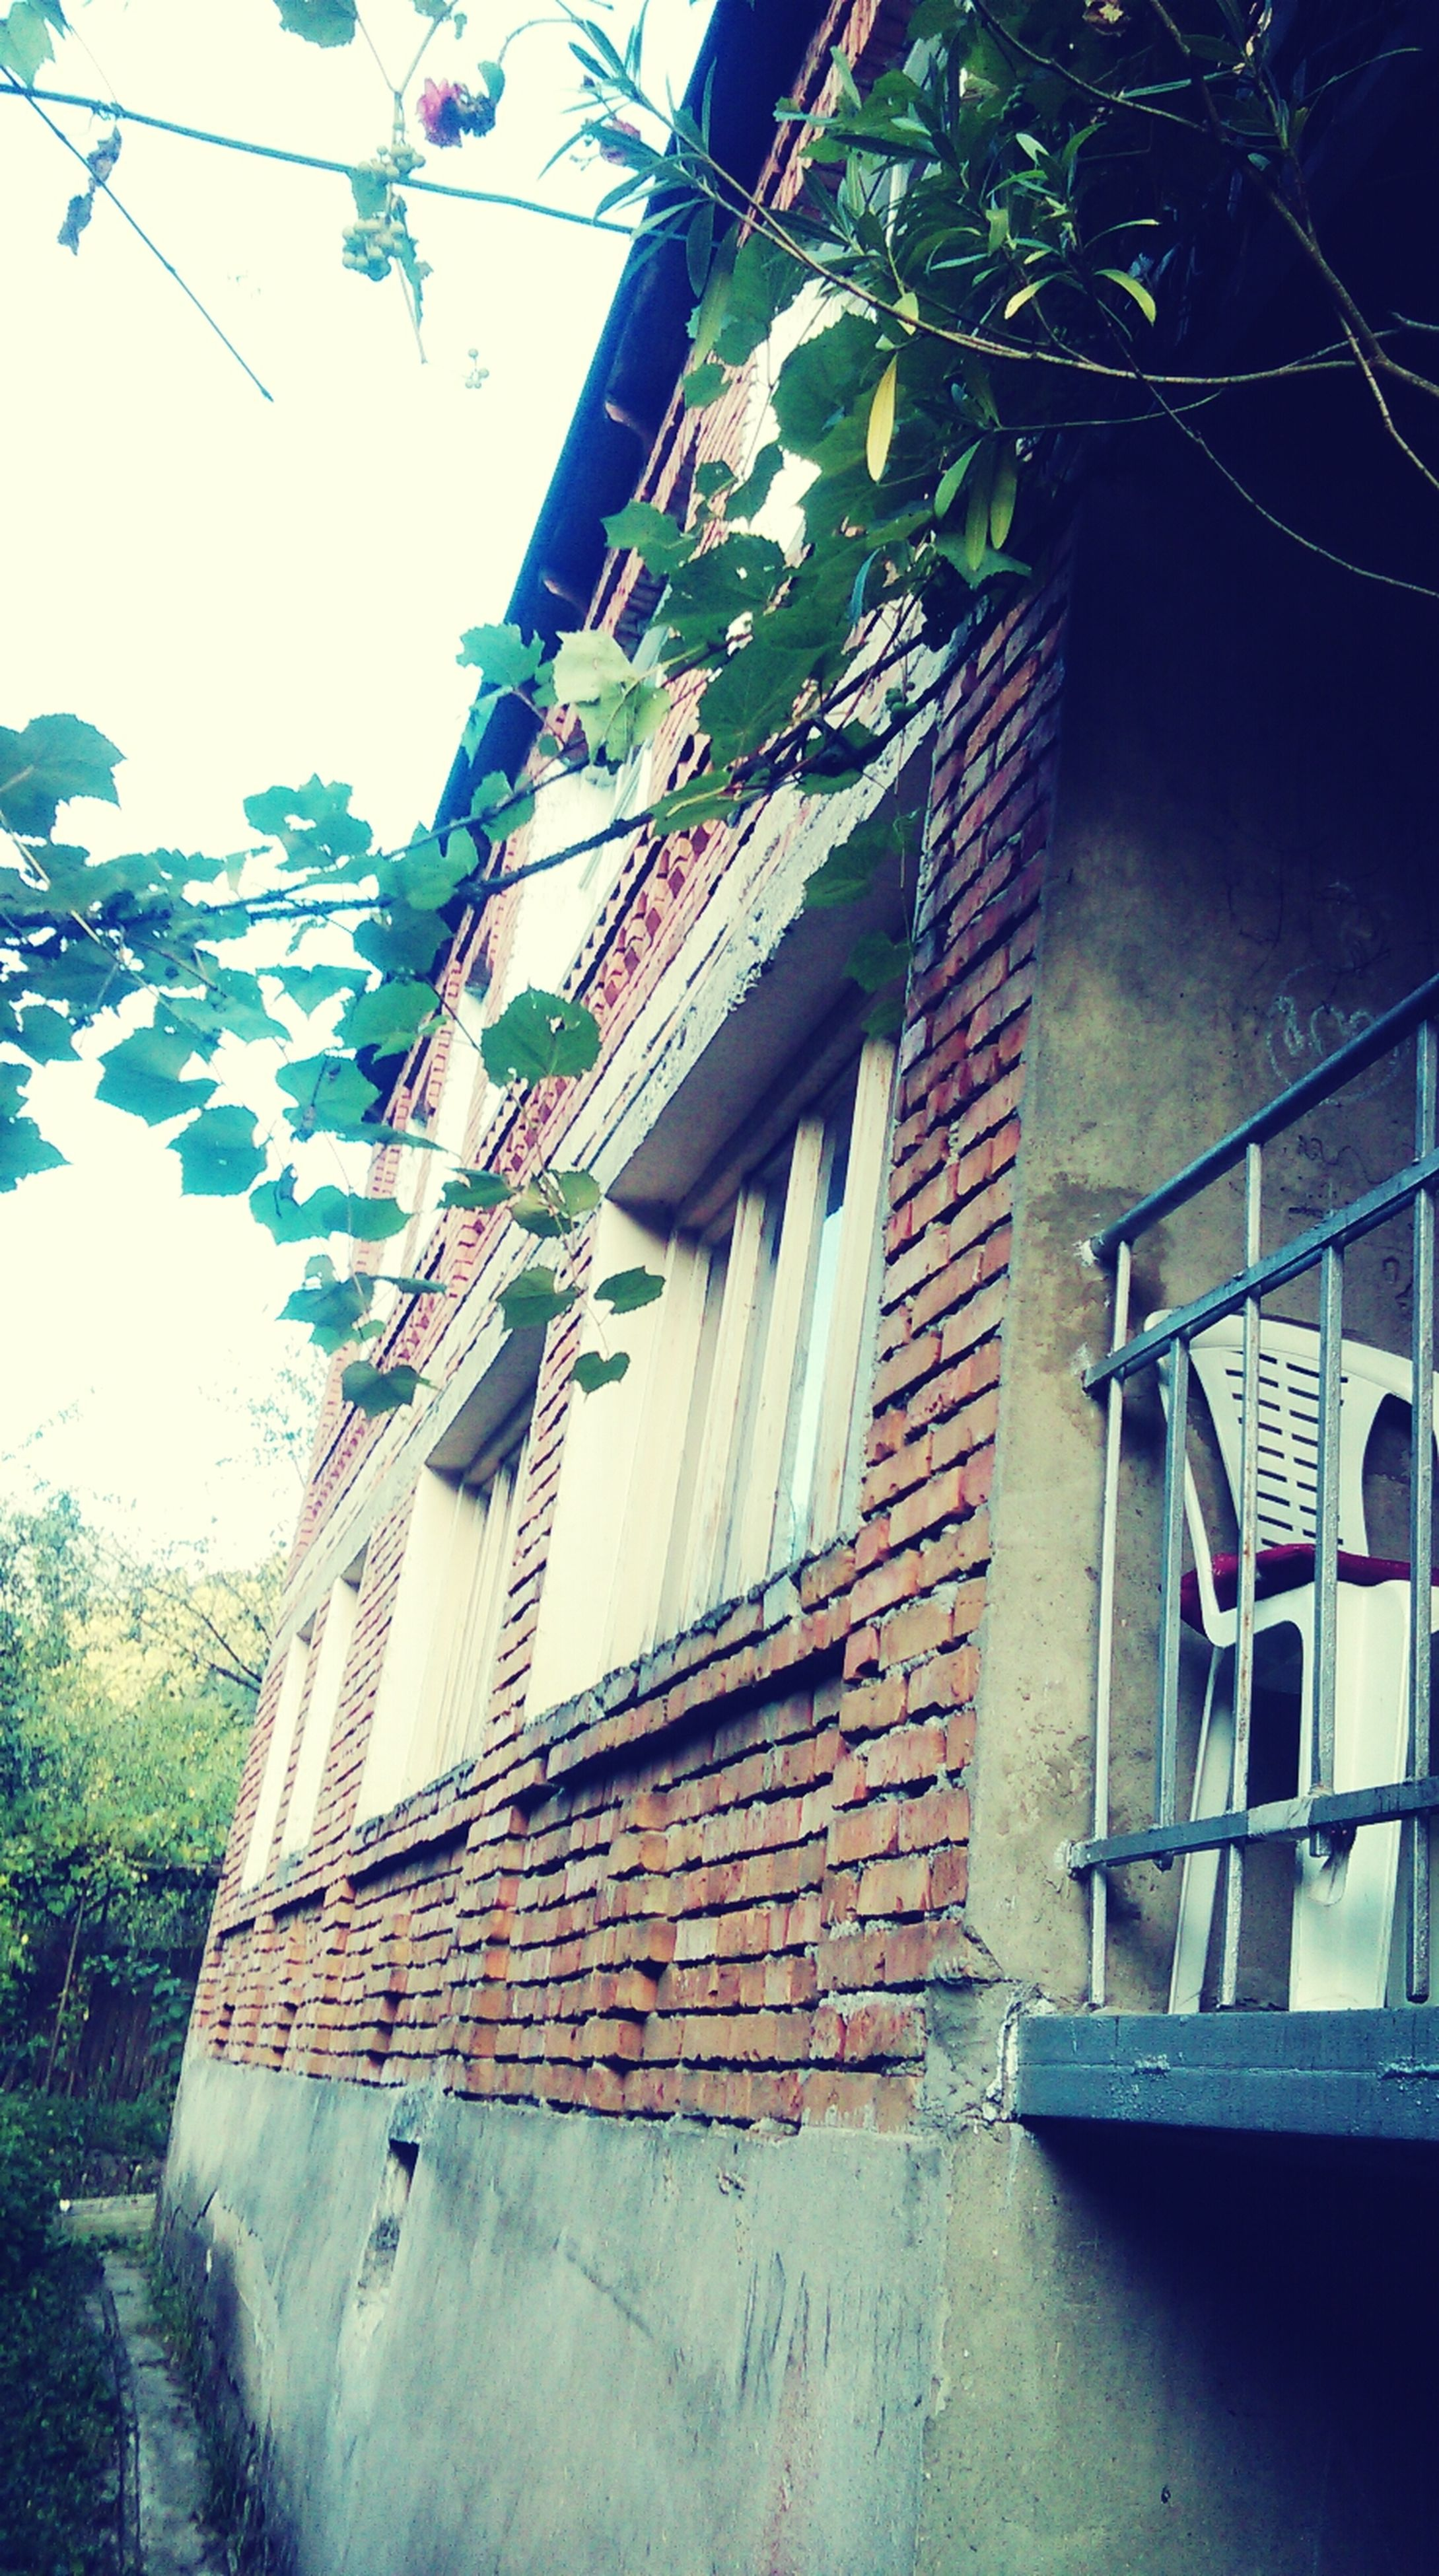 building exterior, architecture, built structure, house, window, residential structure, residential building, building, day, low angle view, tree, outdoors, no people, sky, sunlight, plant, glass - material, nature, abandoned, old